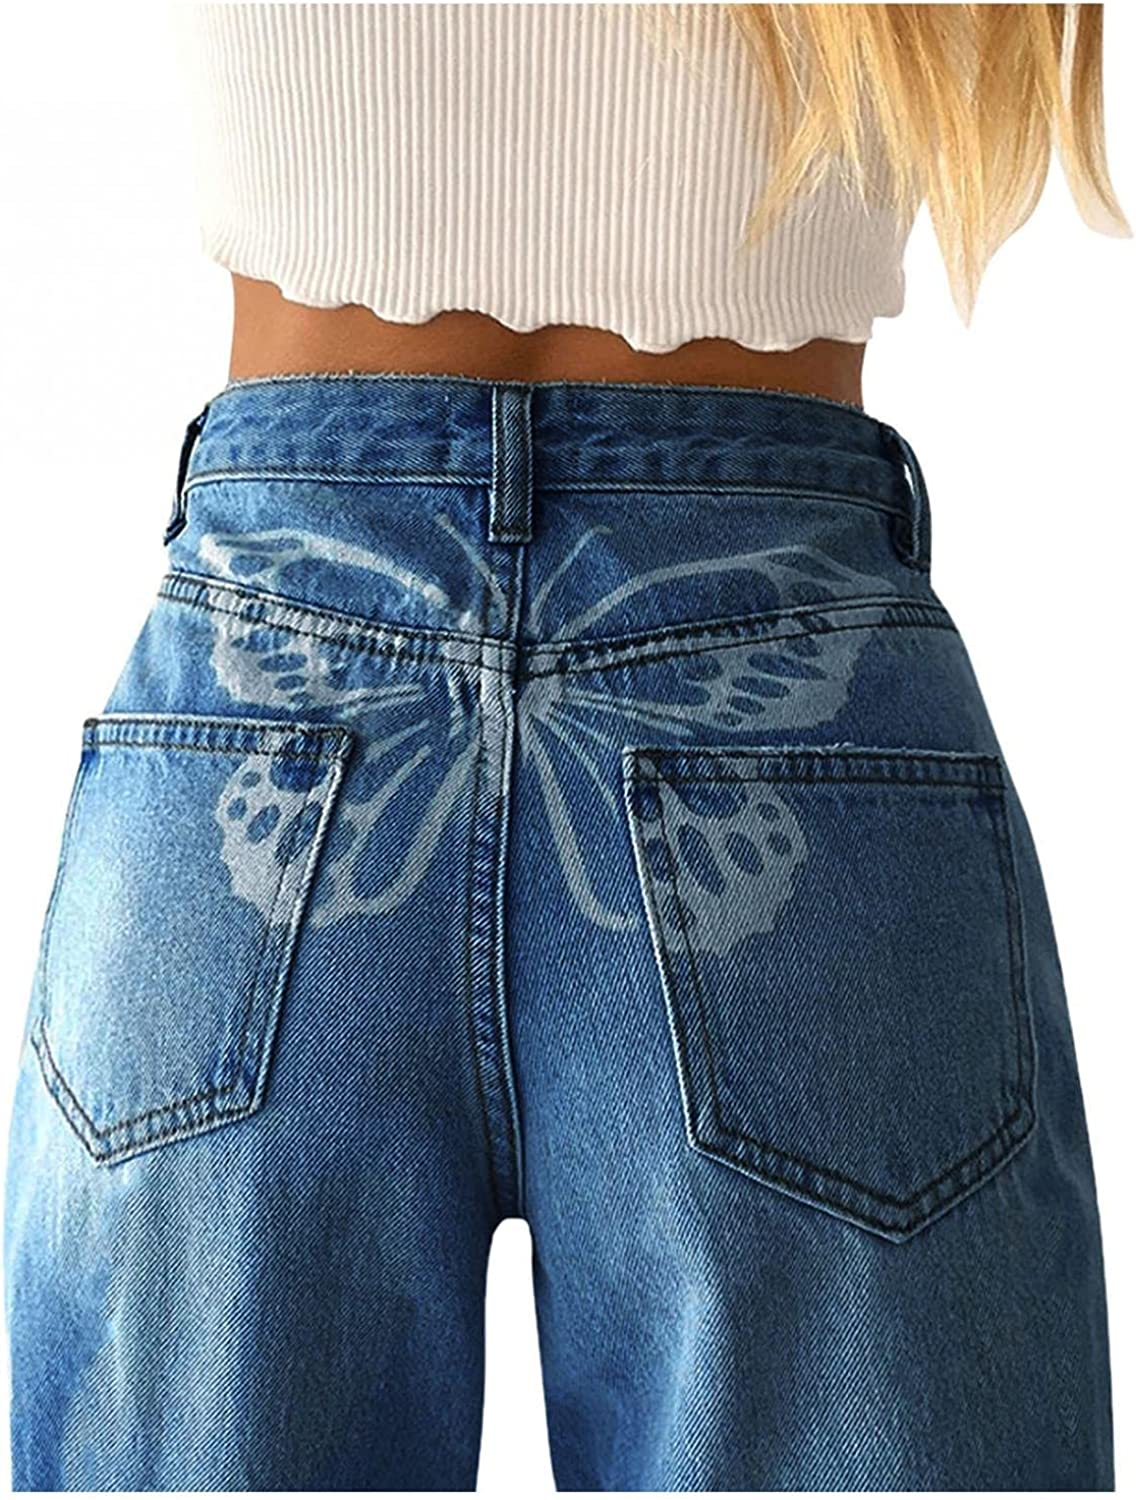 Lingbing Y2K Fashion Jeans, Women High Waist Wide Leg Vintage Butterfly Pants Loose Casual Baggy Trousers Ripped Pants